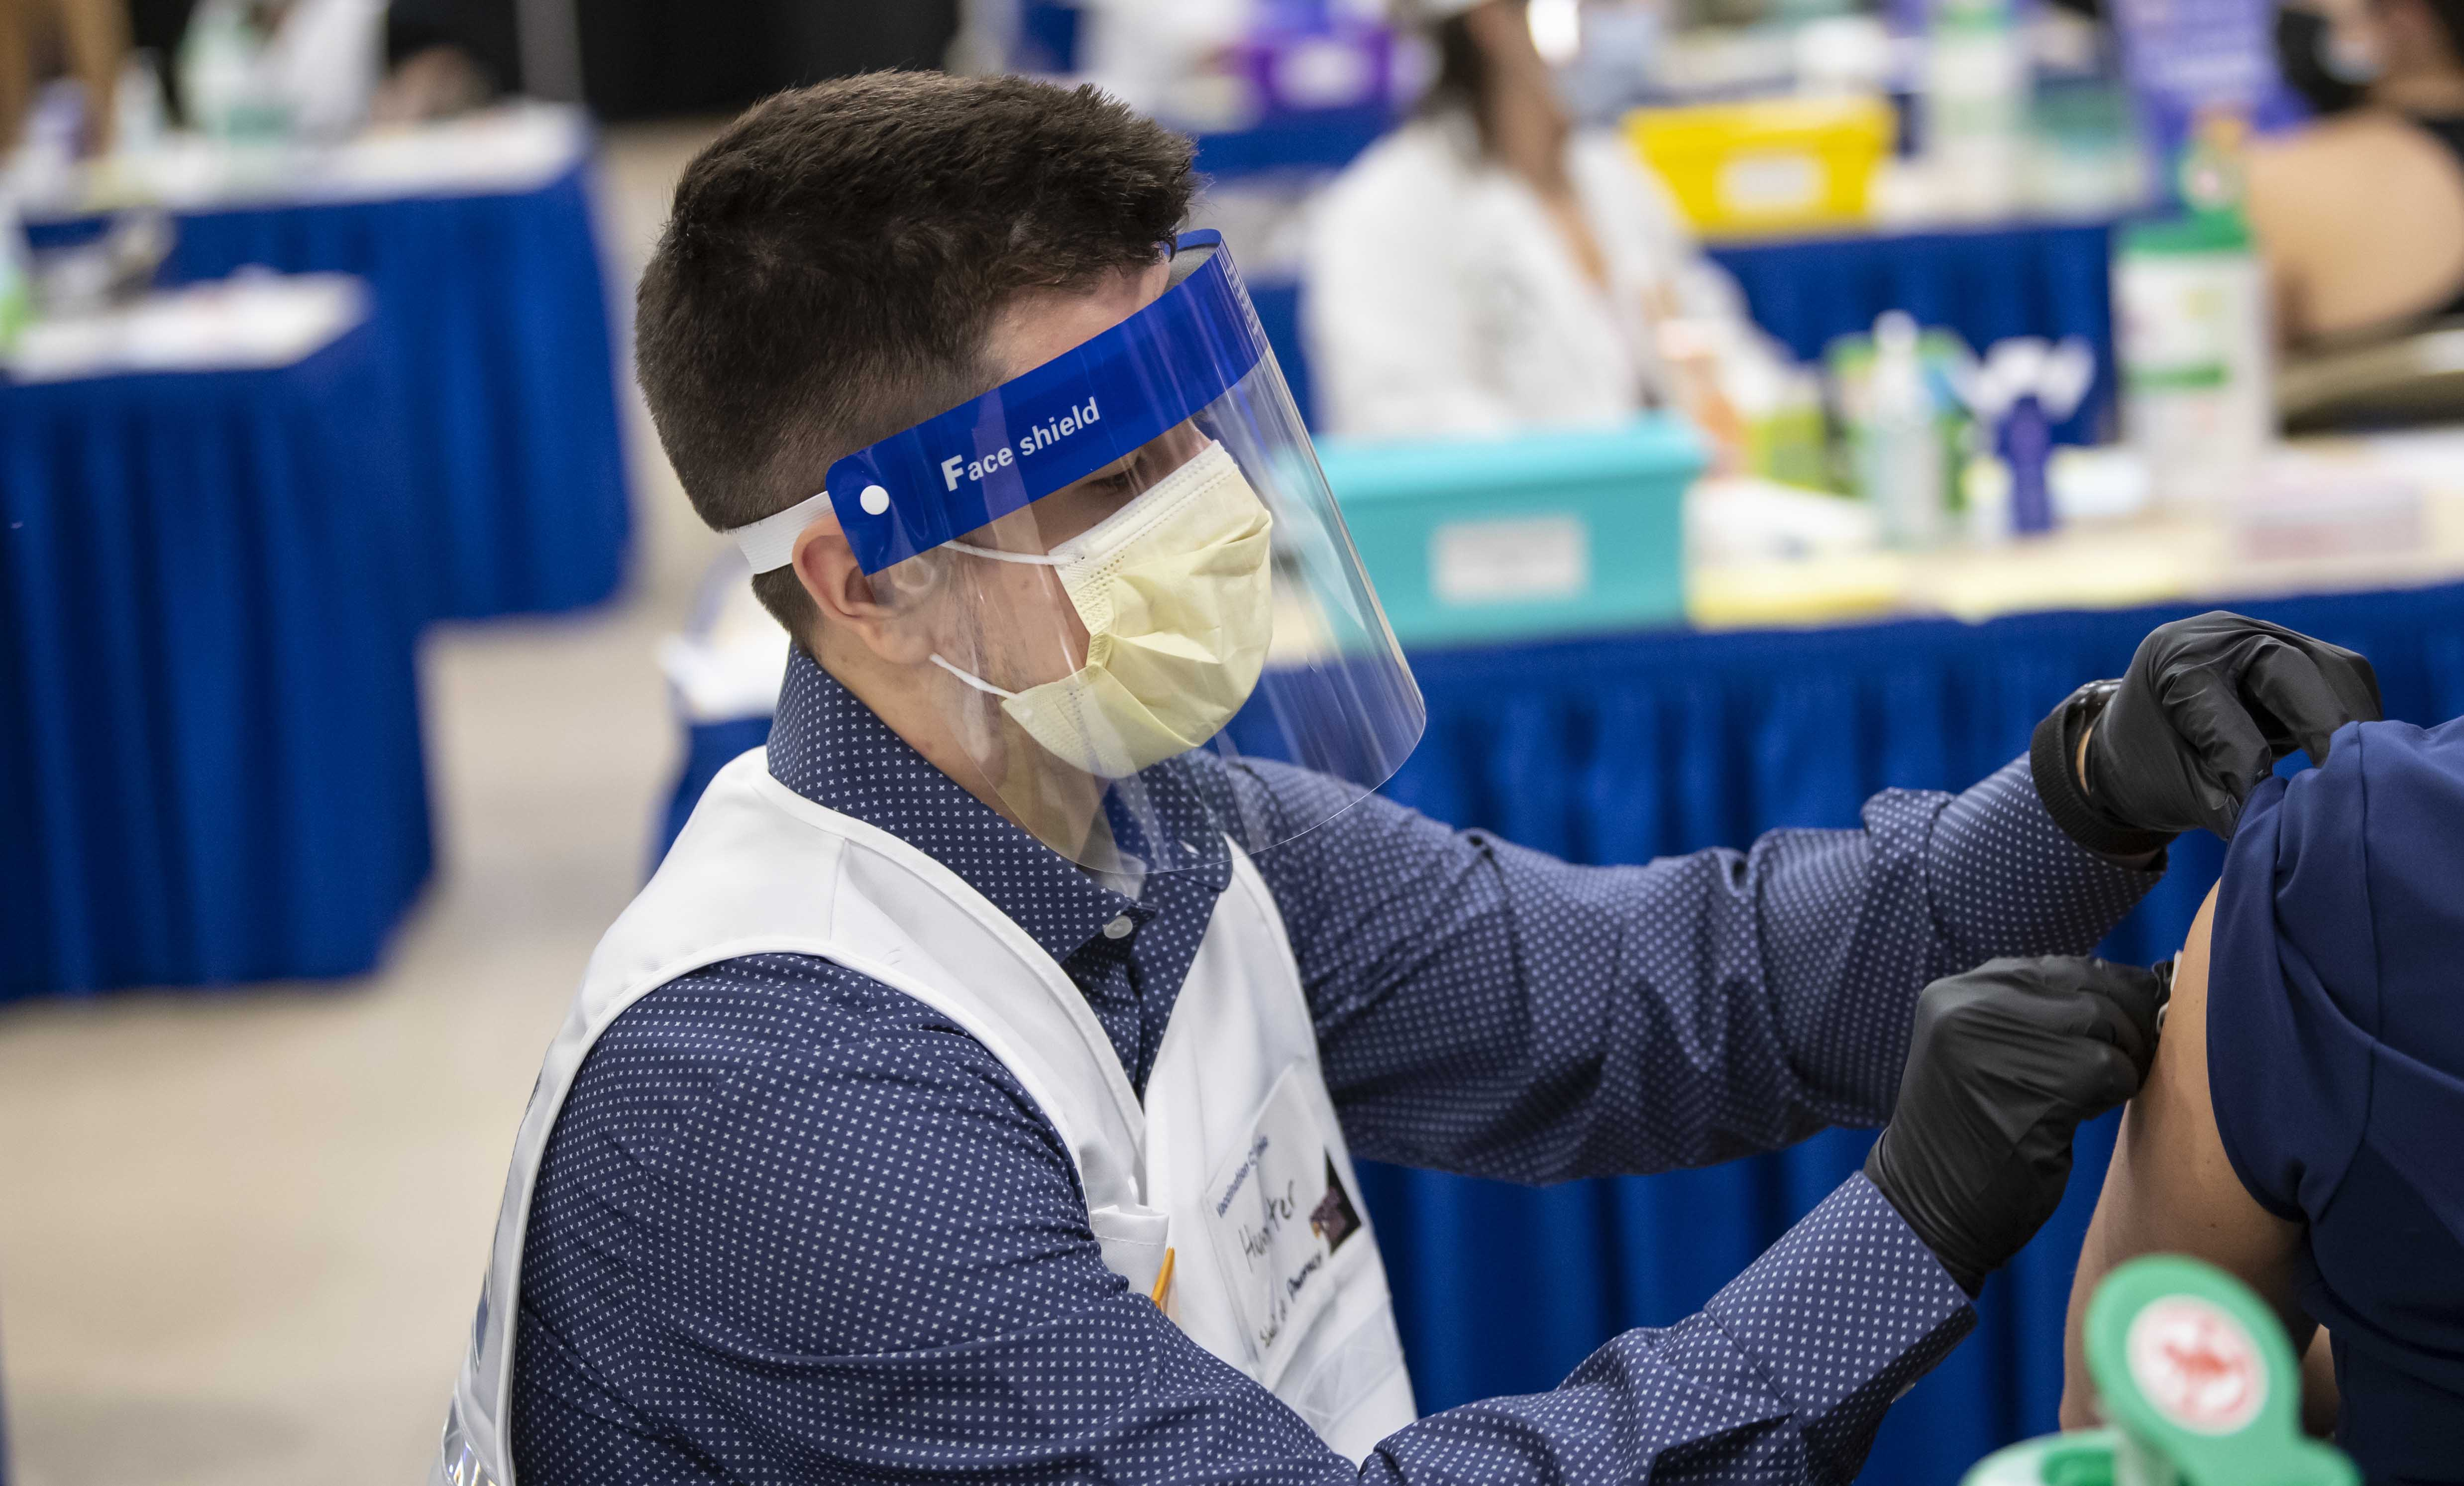 Man in face shield giving vaccine